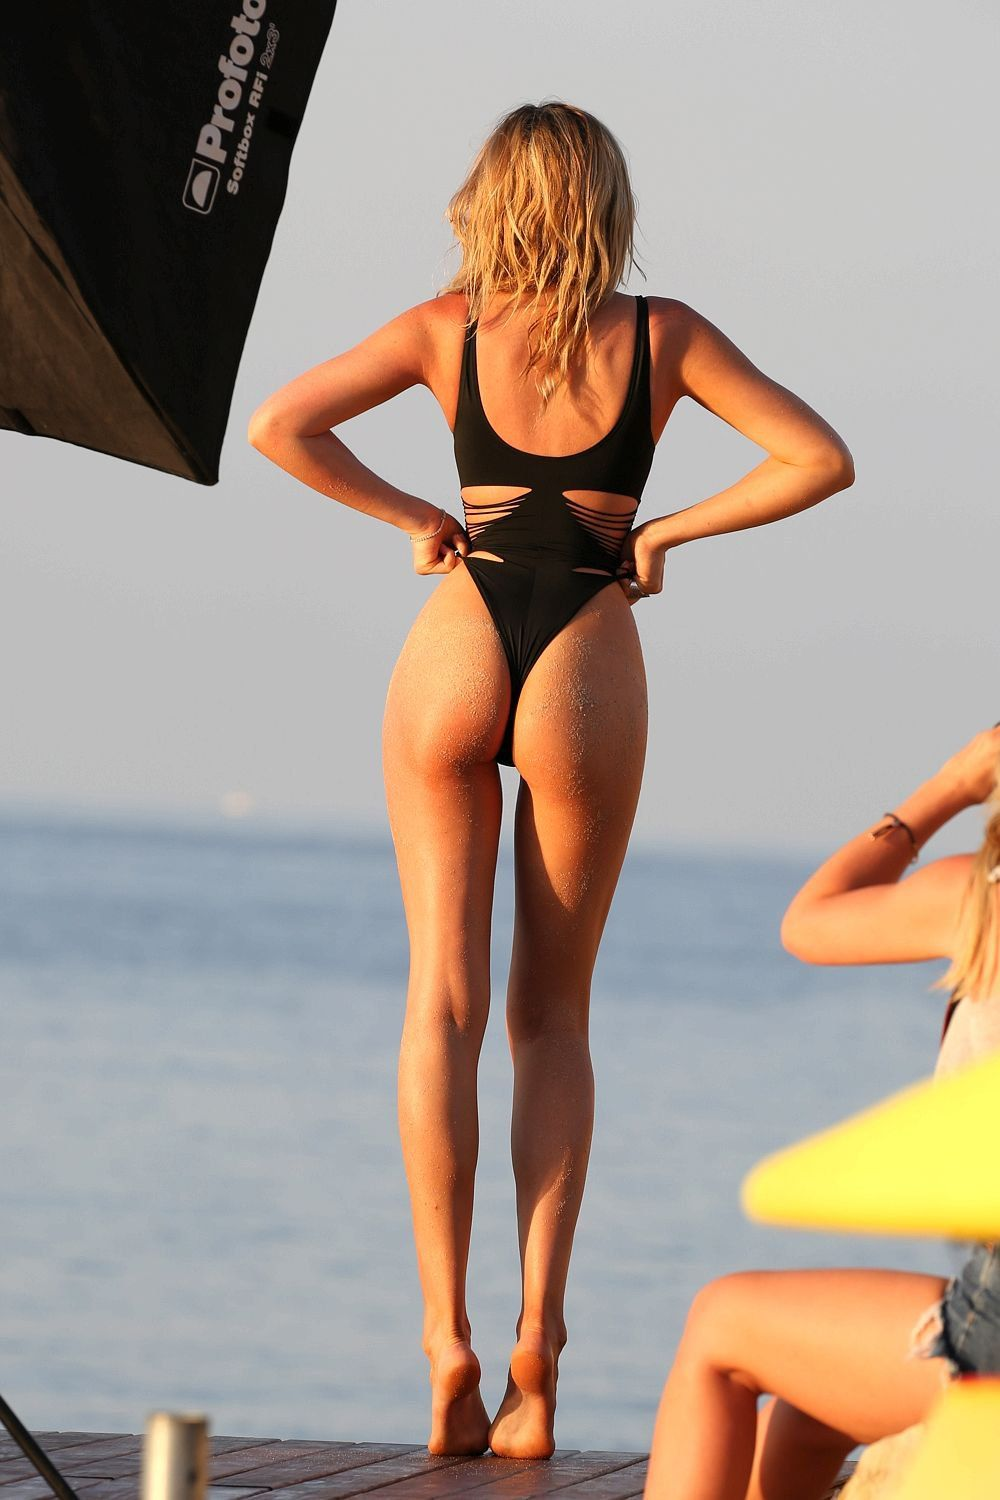 Porn Abbey Clancy nude (27 photo), Sexy, Fappening, Instagram, legs 2015